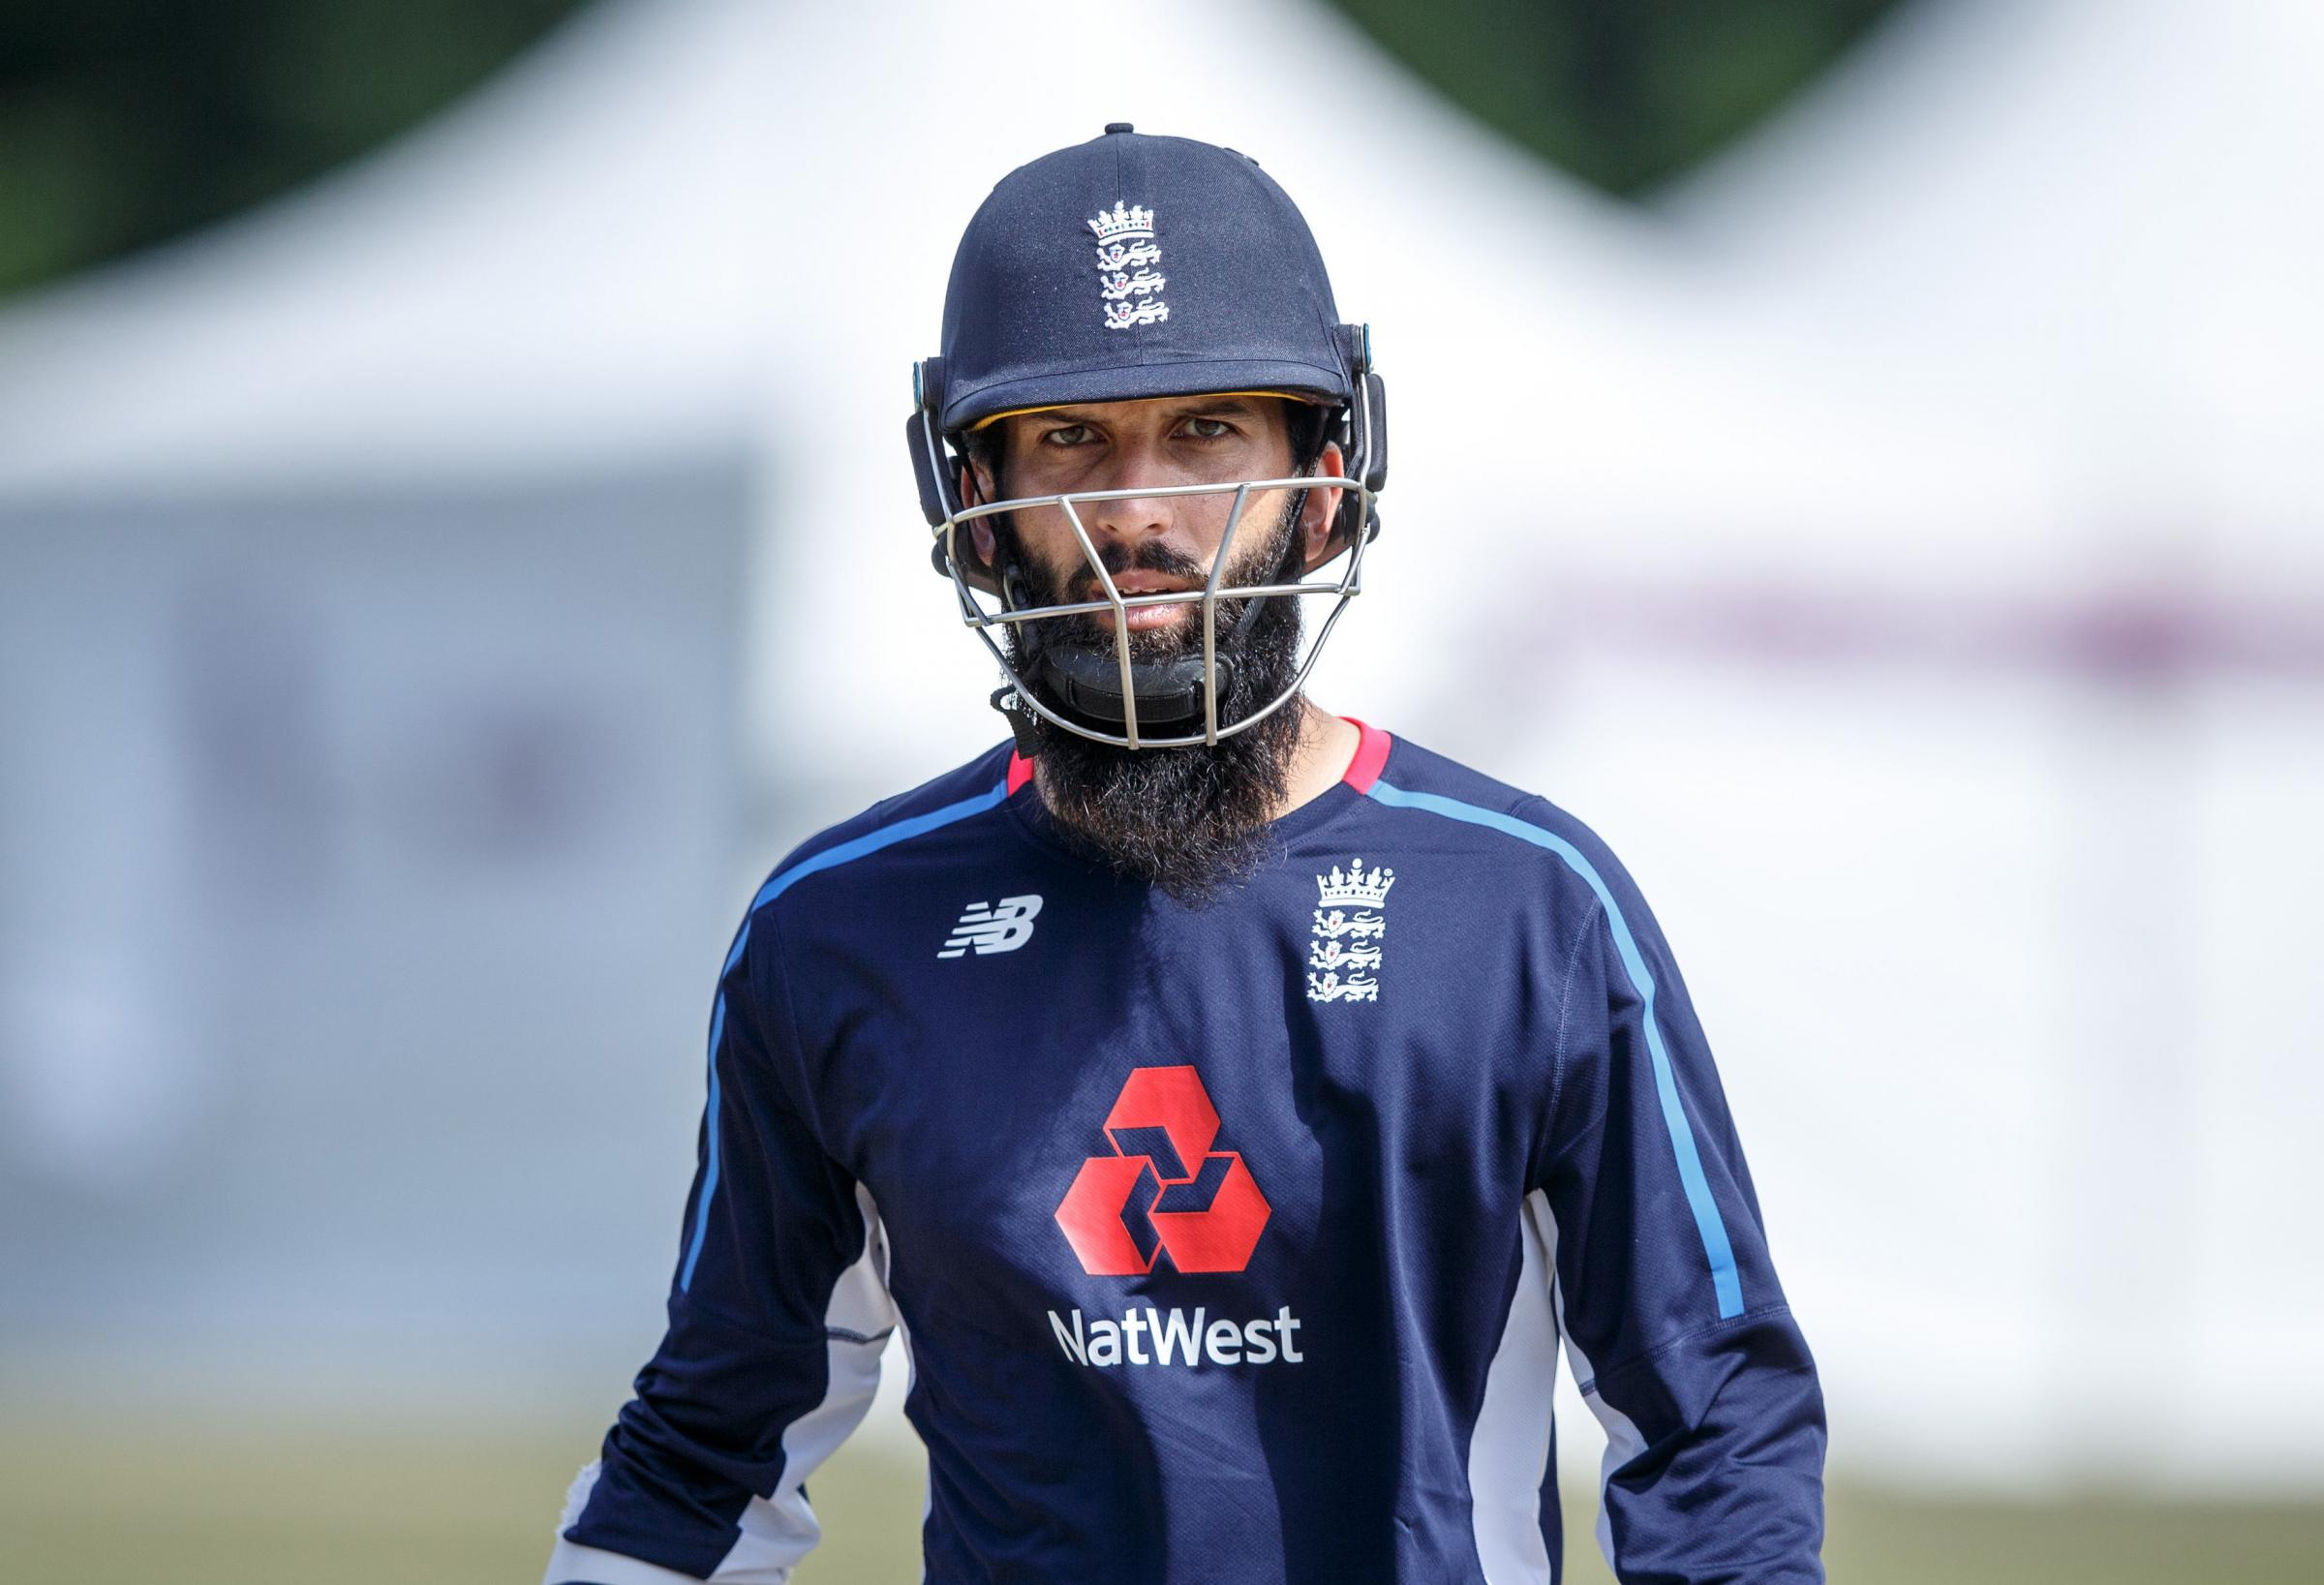 England's Moeen Ali during a nets session at The Grange, Edinburgh. PRESS ASSOCIATION Photo. Picture date: Saturday June 9, 2018. See PA story CRICKET England. Photo credit should read: Robert Perry/PA Wire. RESTRICTIONS: Editorial use only. No commer